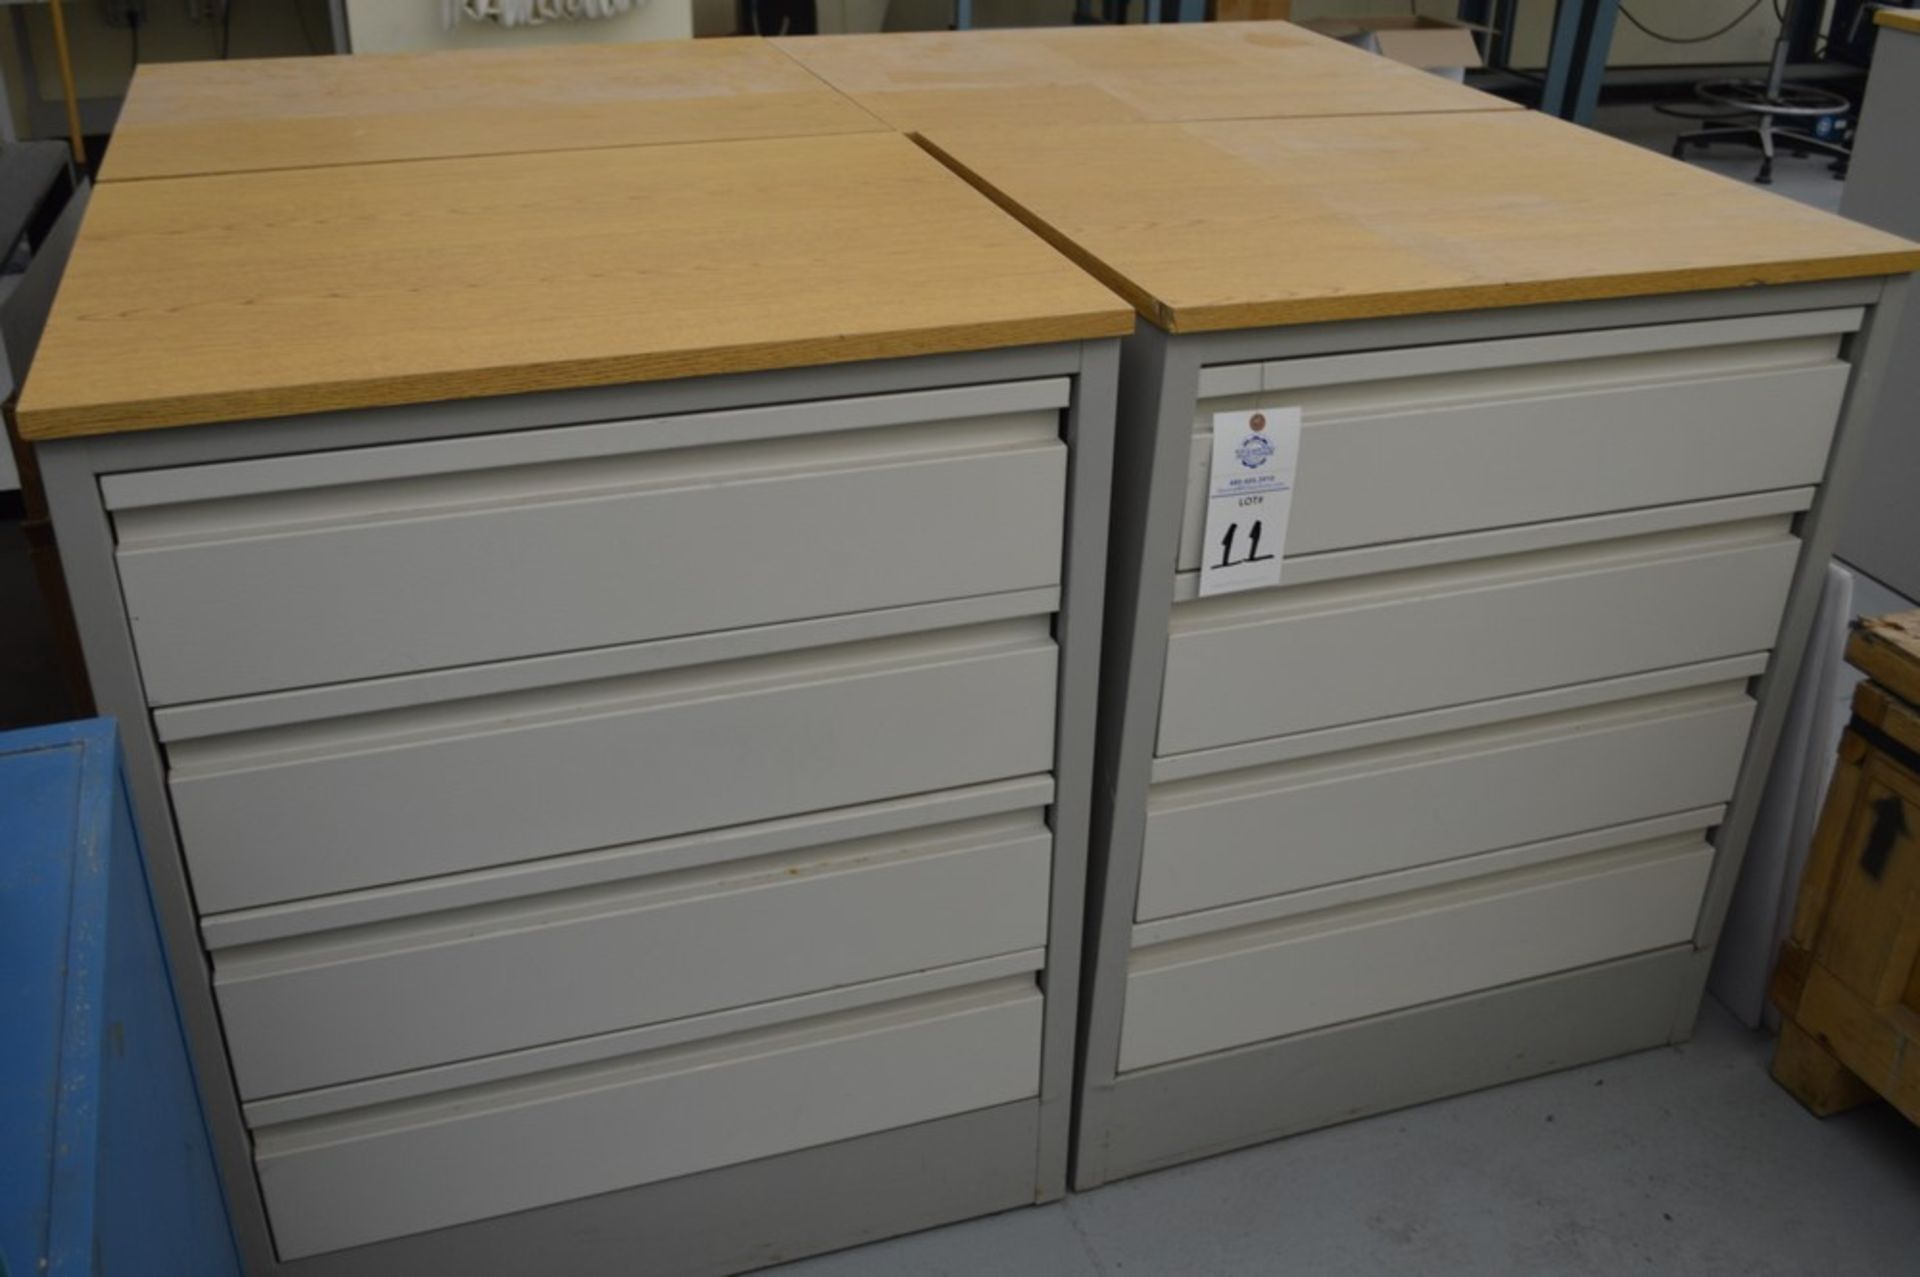 """(3) 4 Drawer Metal Cabinets with wood finished formica tops, 24"""" x 30.5"""", 36.5"""" Tall - Image 4 of 4"""